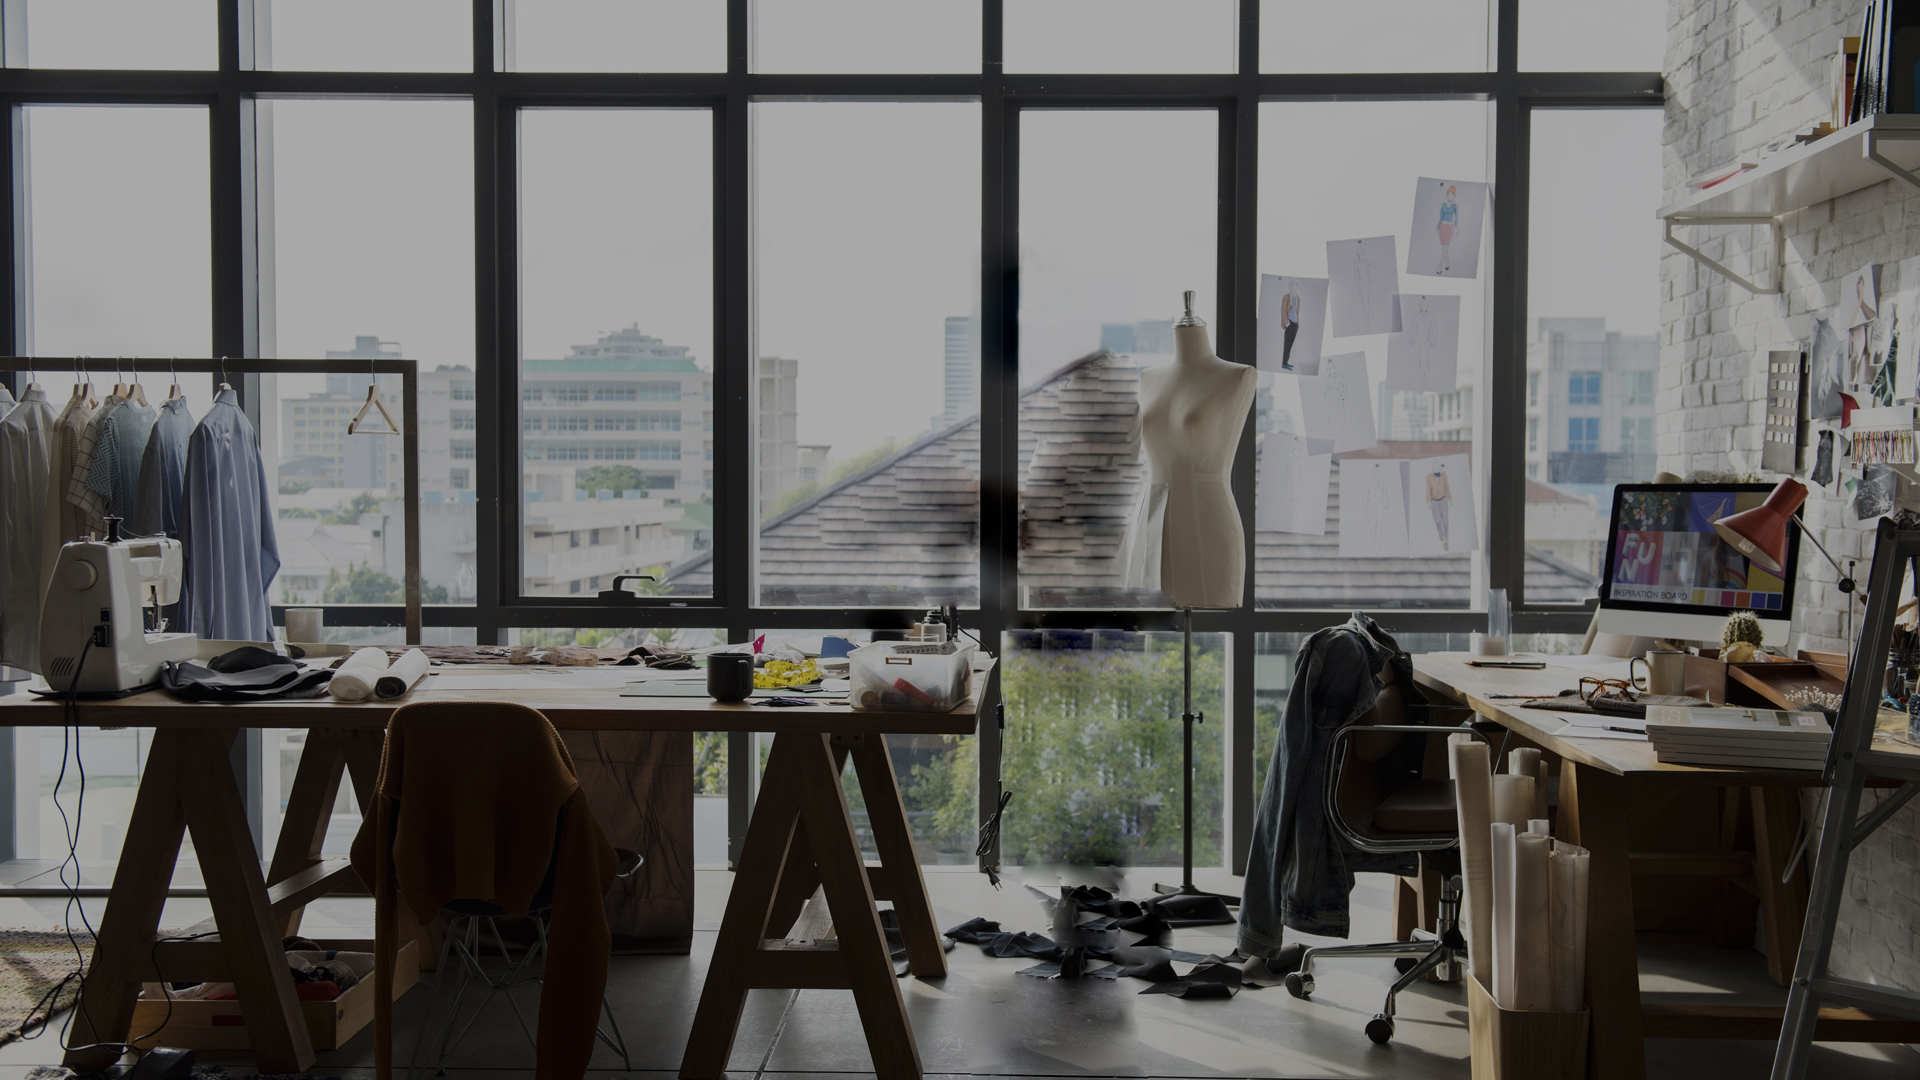 Study and Learn Fashion Design Online Courses